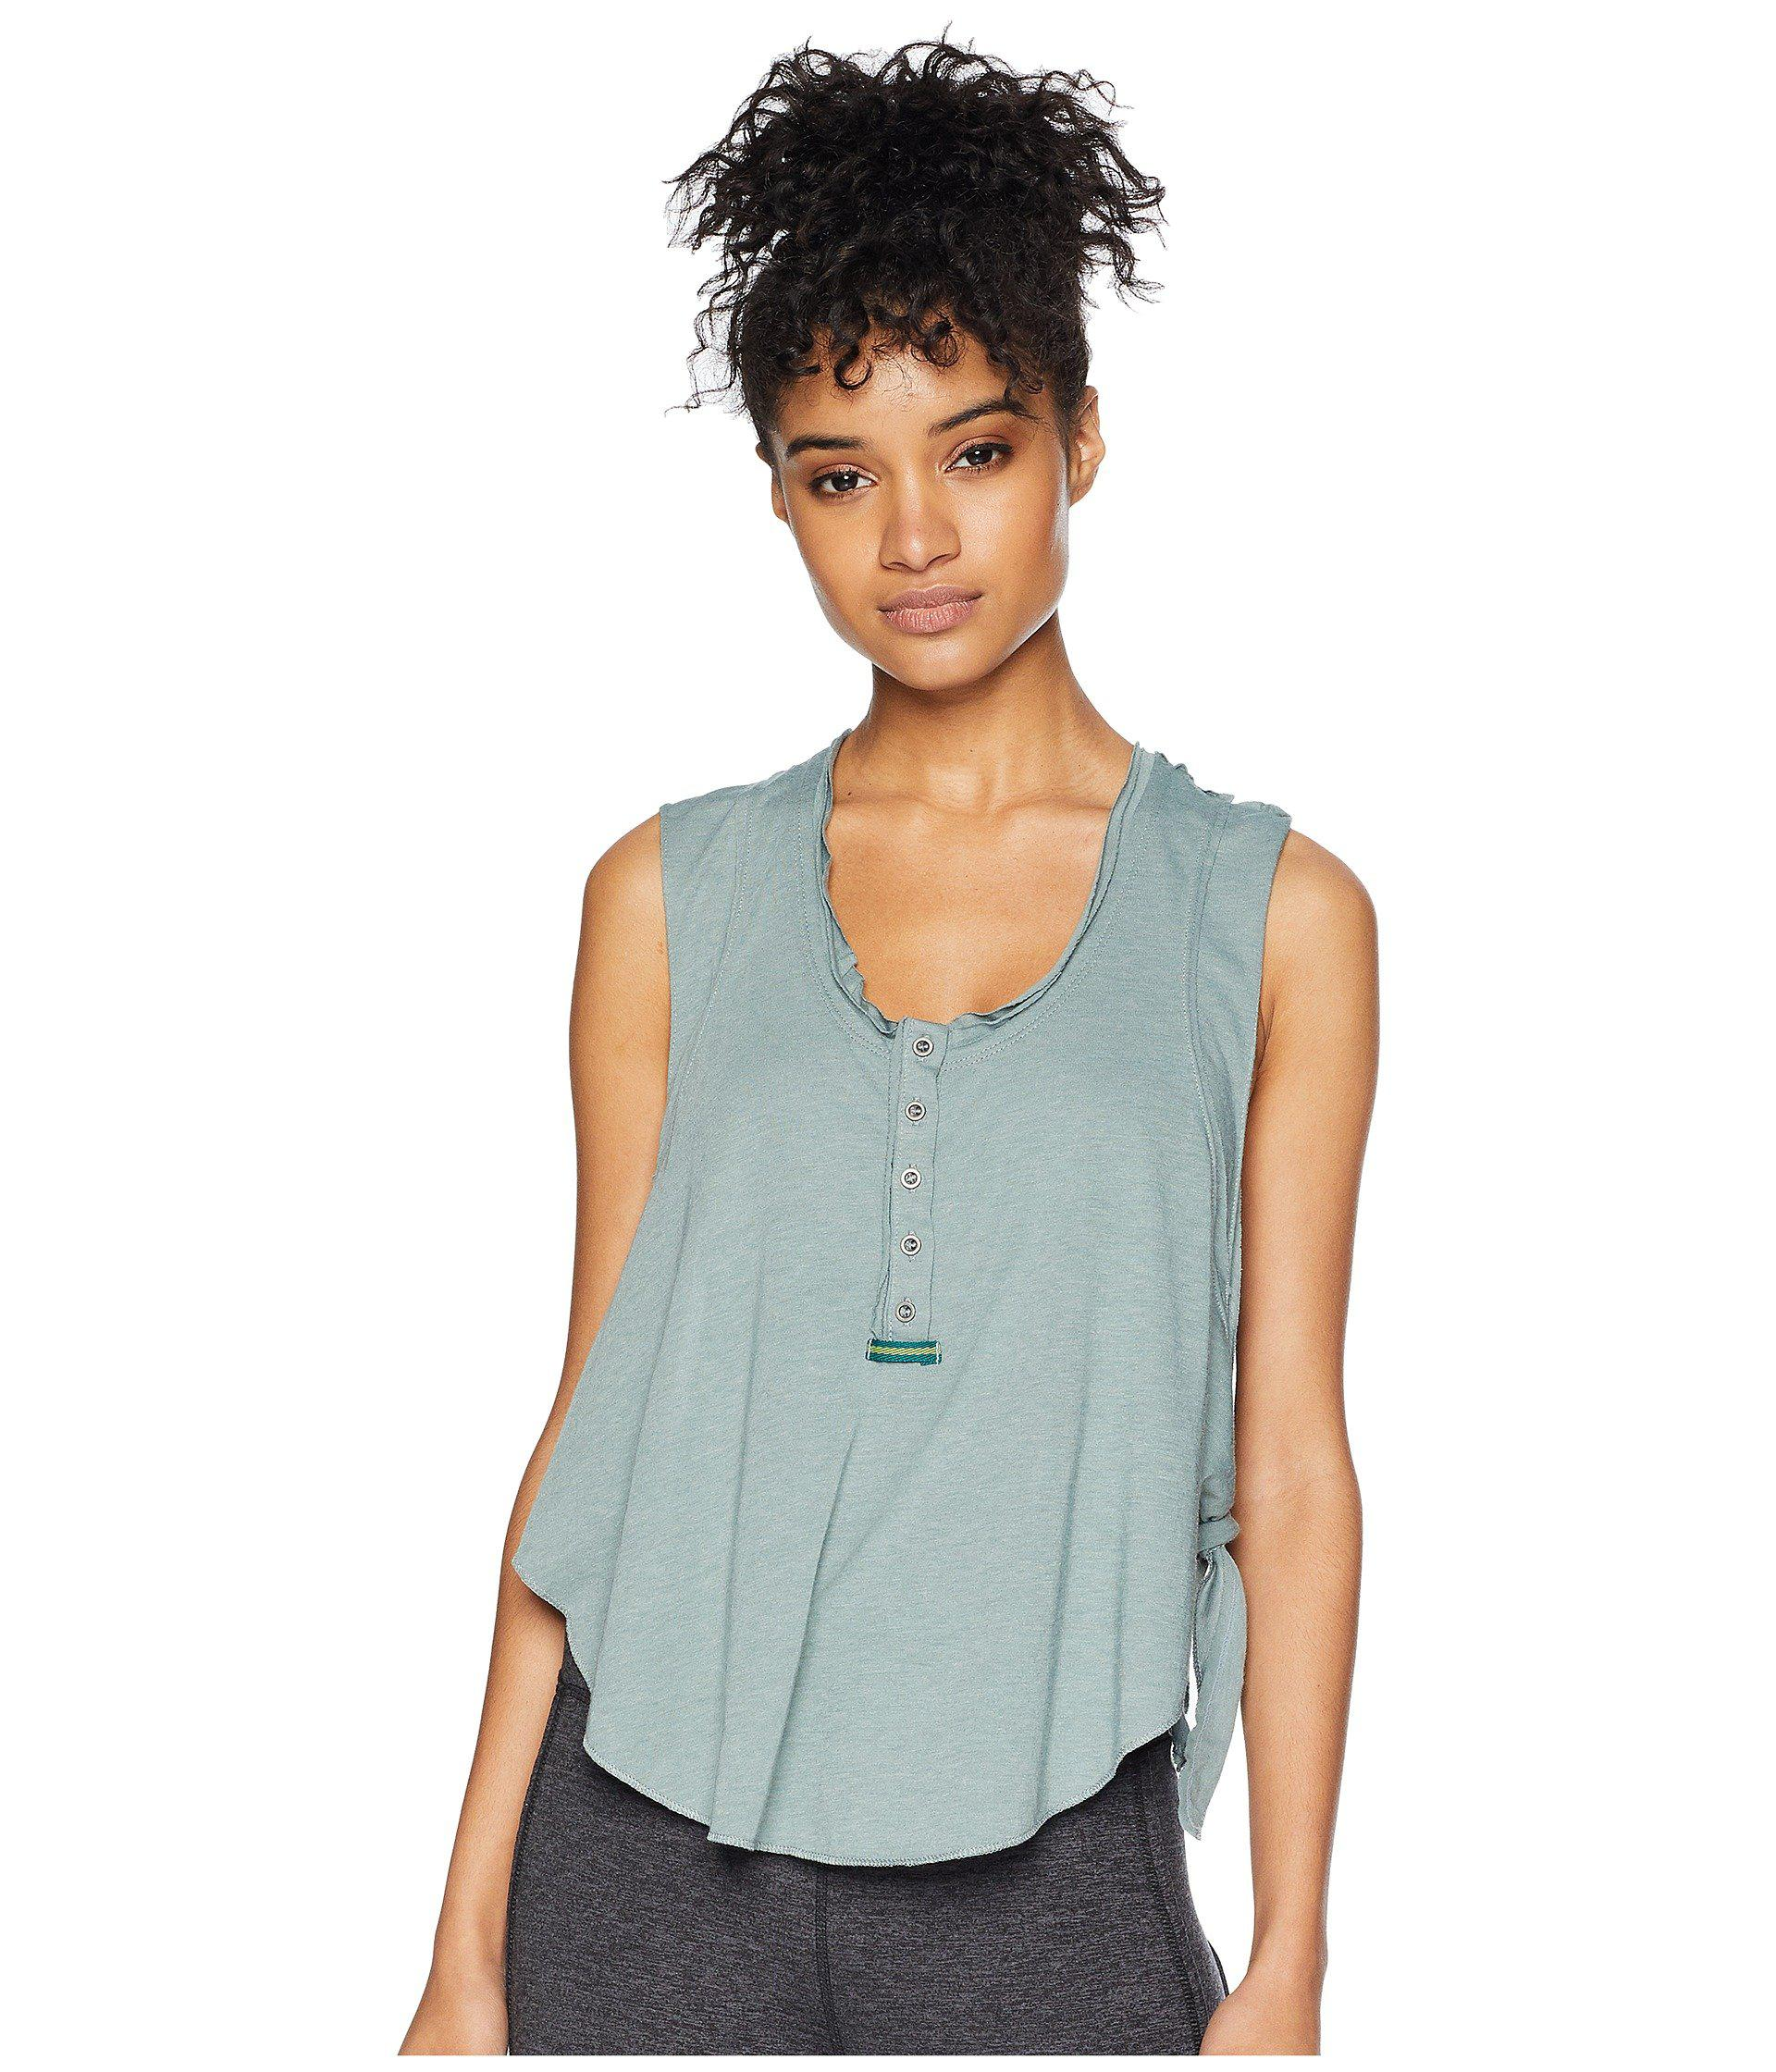 ccc42b3623 Free People High Tide Tank Top (white) Women's Clothing in Green - Lyst